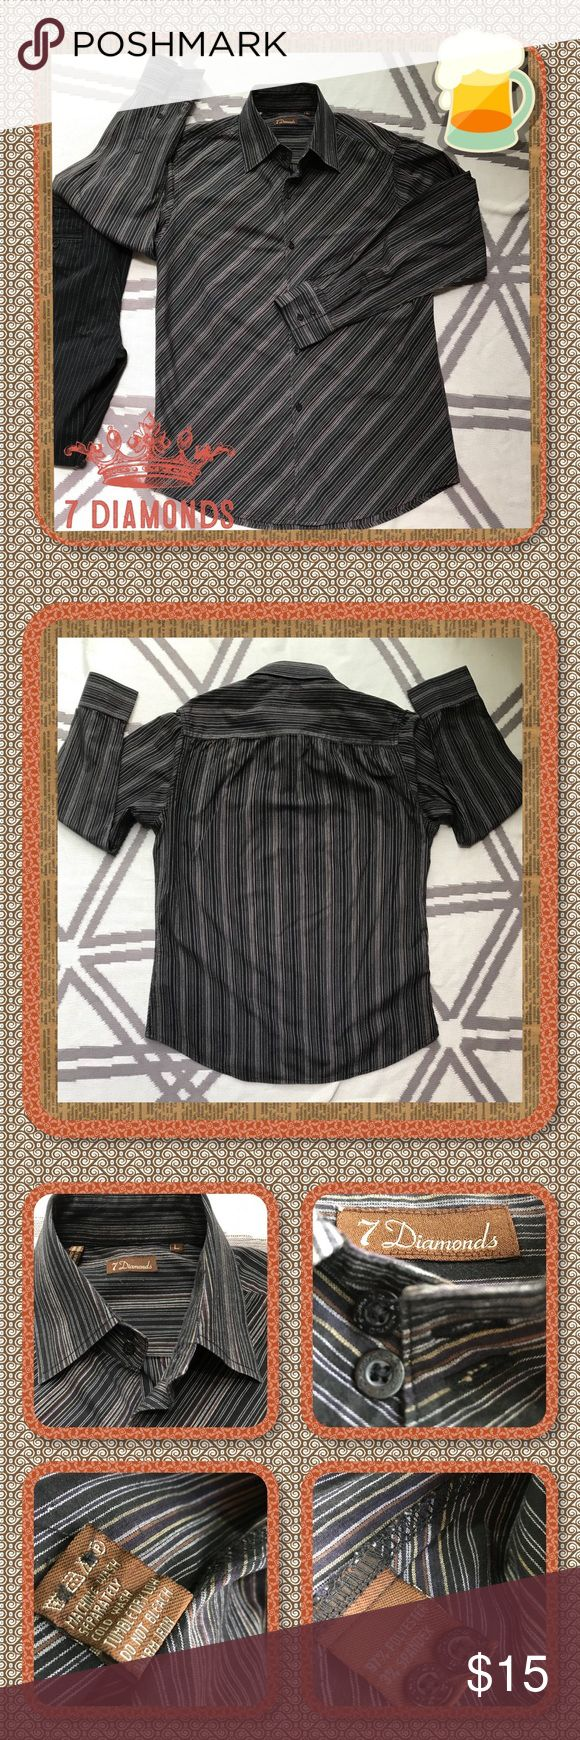 🎰 7 Diamonds Shirt 🎰 Men's black long sleeved casual shirt. Beautifully constructed shirt with a neutral colored diagonal striped pattern on the front side, vertical & horizontal on the back. Stripes ate brown, gold & gray & fabric has spandex for a little stretch. EUC without any rips or stains. Extra buttons included. See photos for measurements, fabric content & care. 7 Diamonds Shirts Casual Button Down Shirts